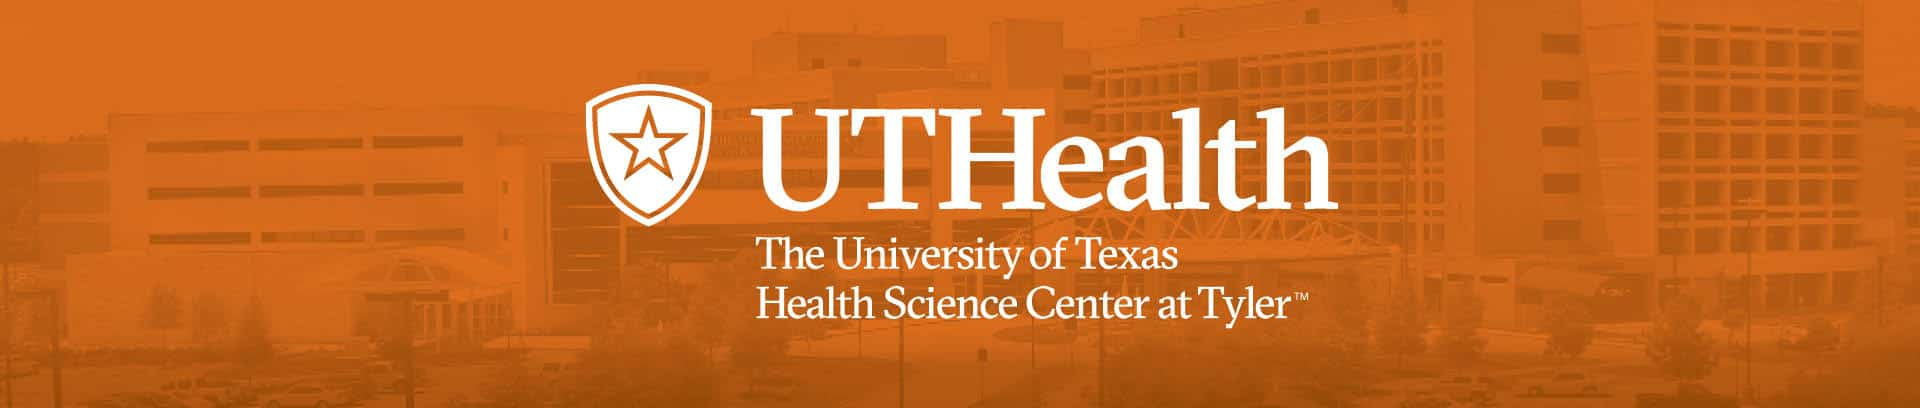 UT Health Branded Campaign